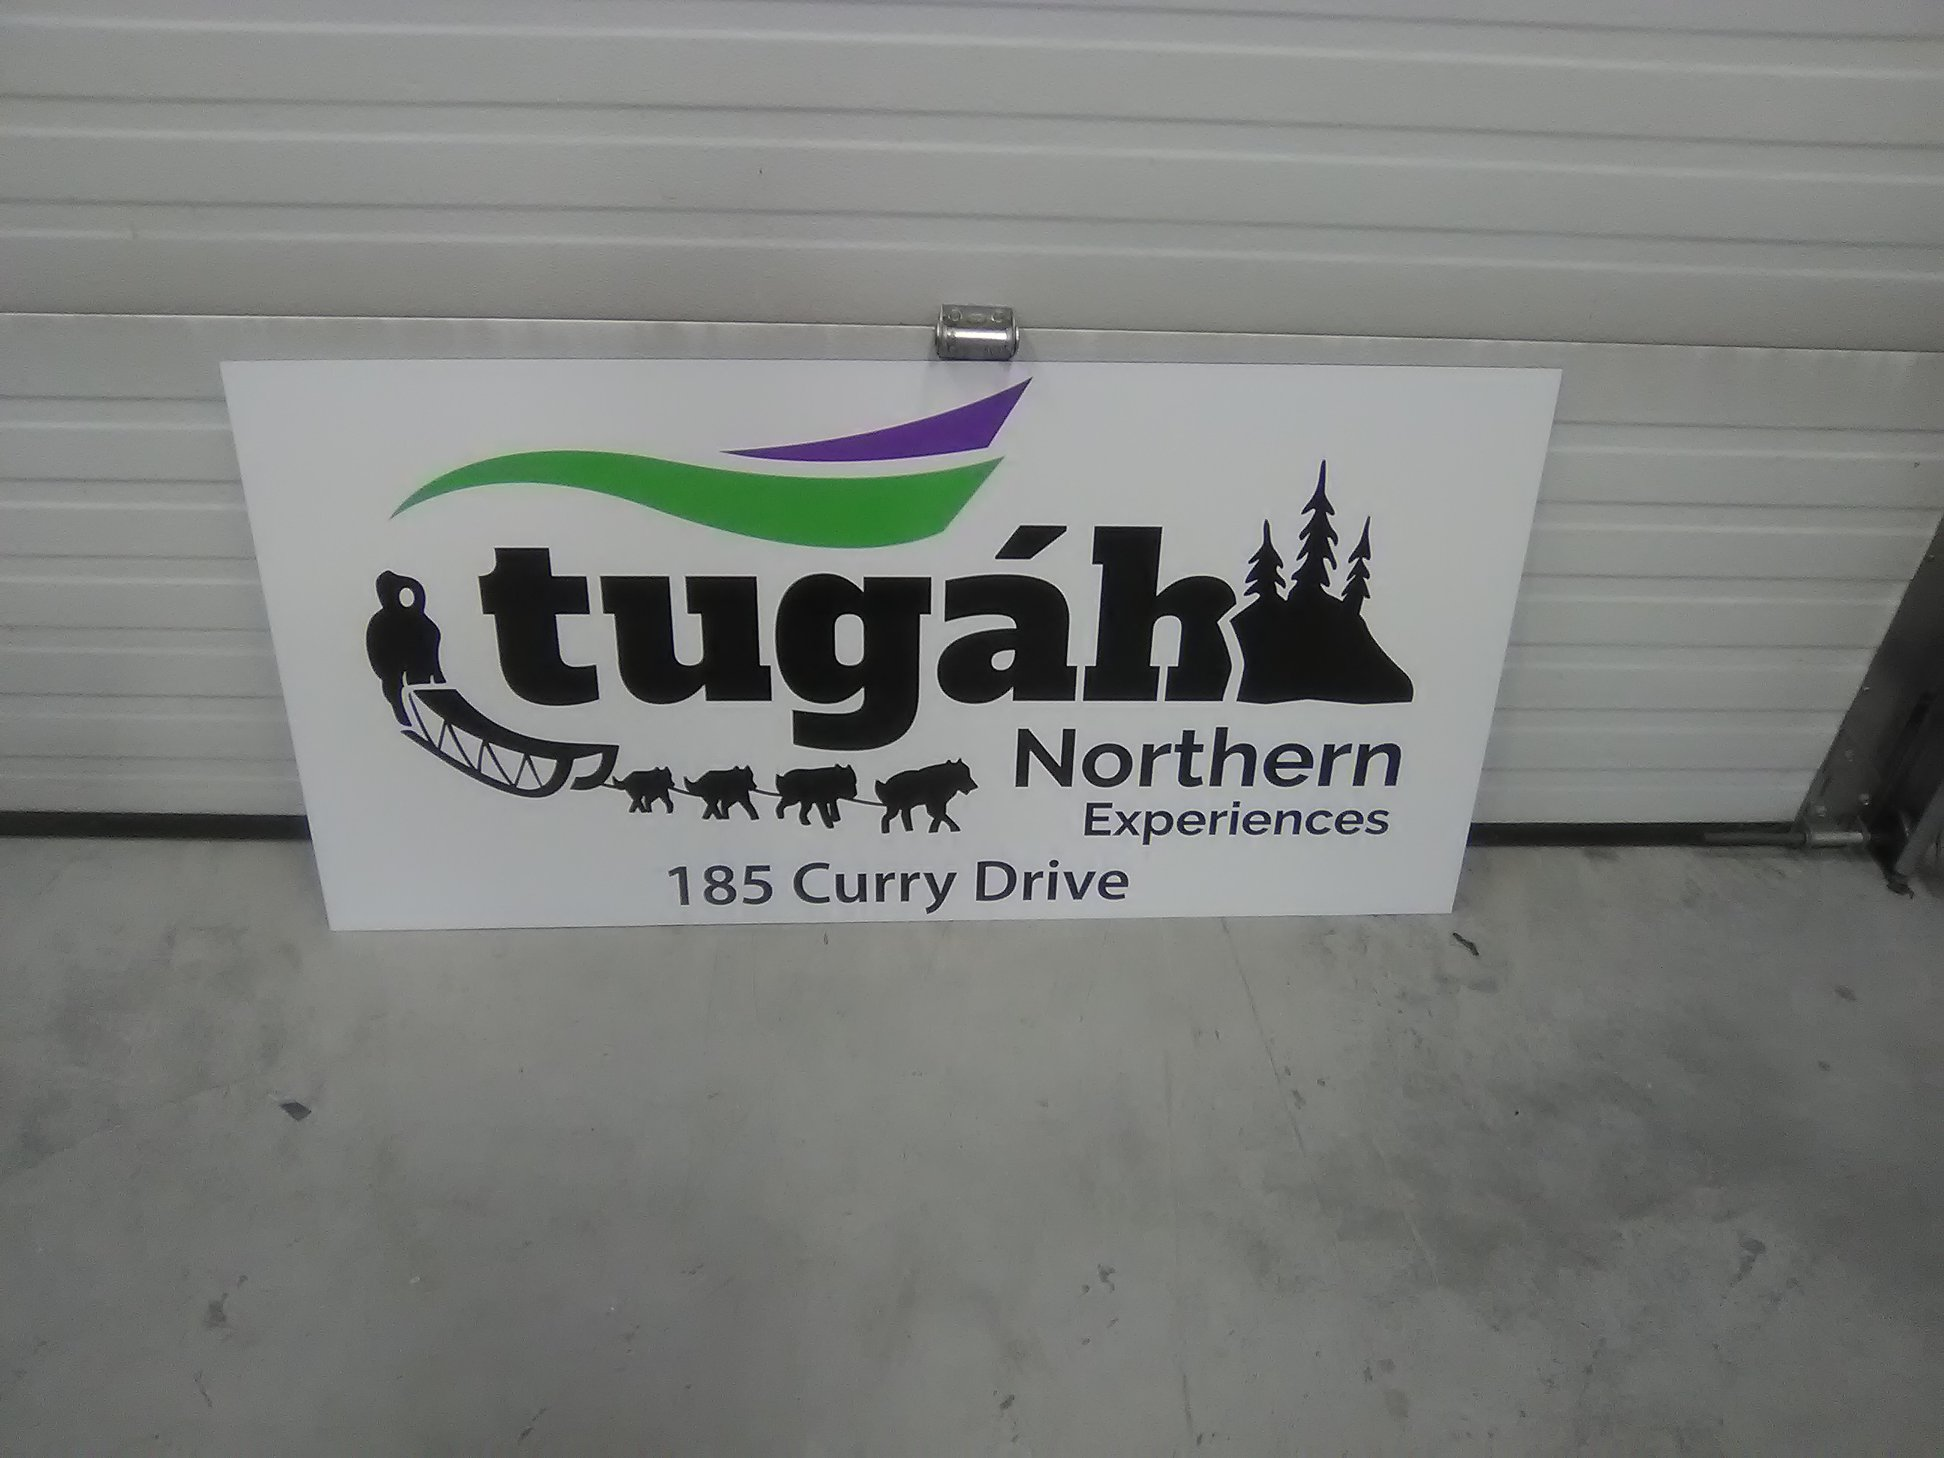 Tugah Northern Experiences Exterior Business Signage Building